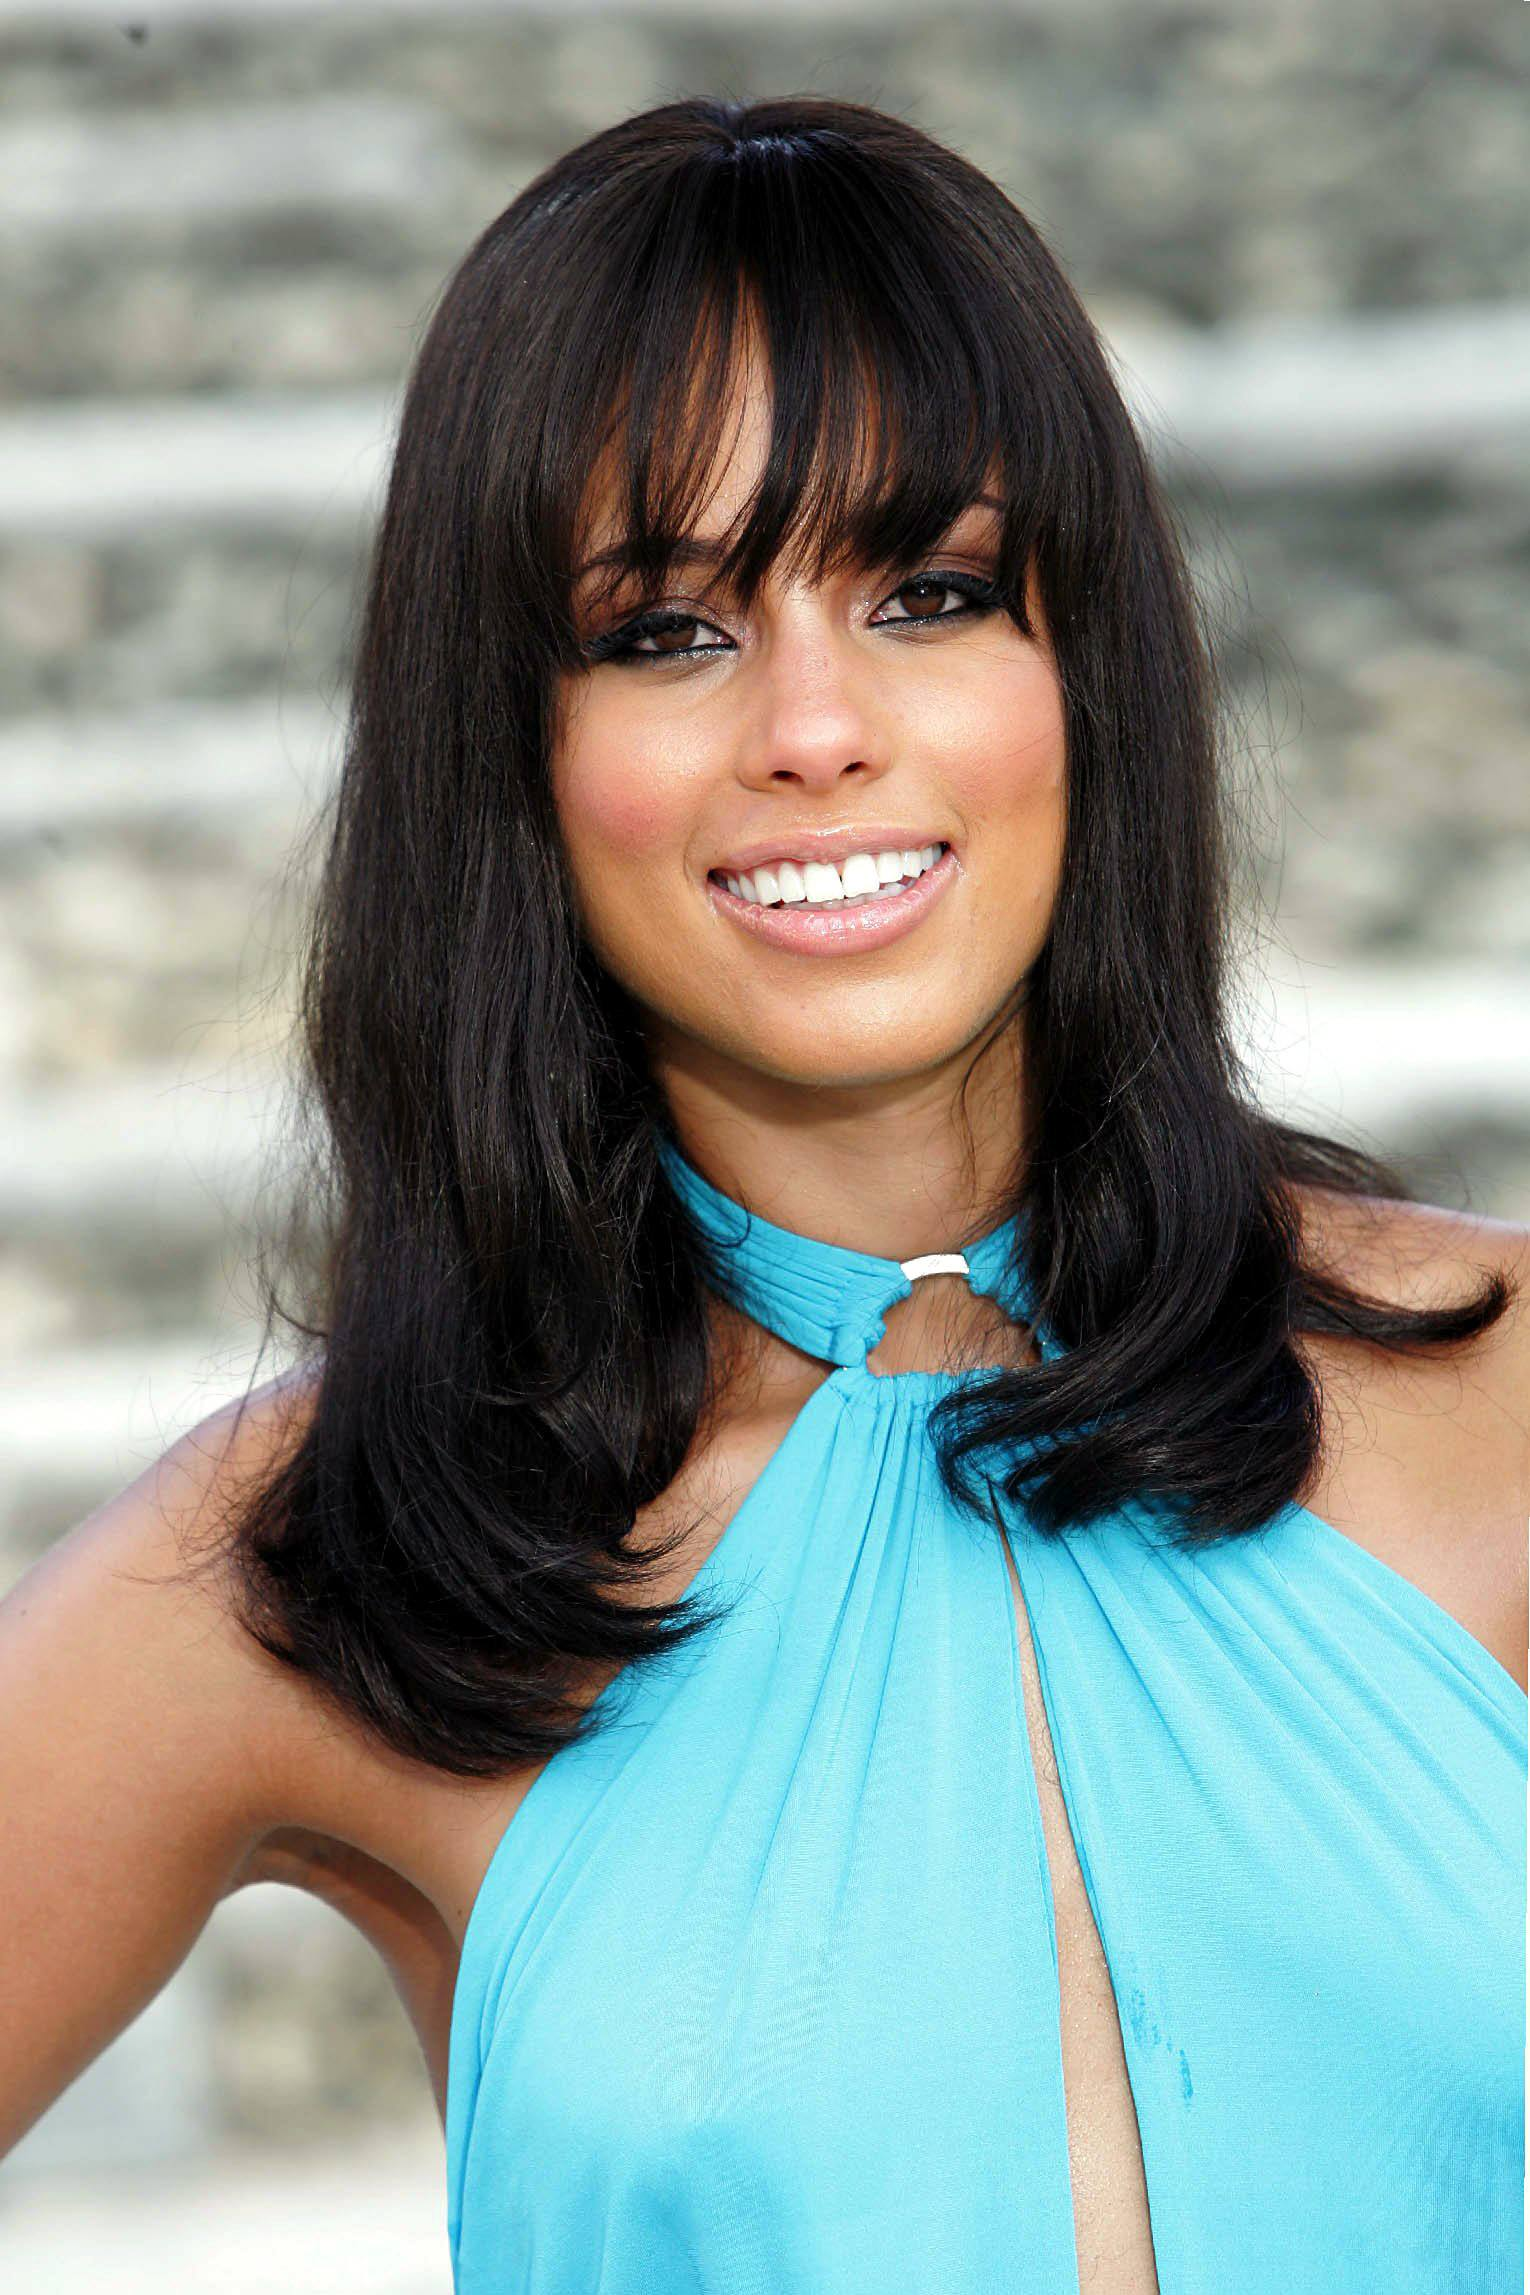 alicia keys filming a video in 2004 with straight hair with bangs